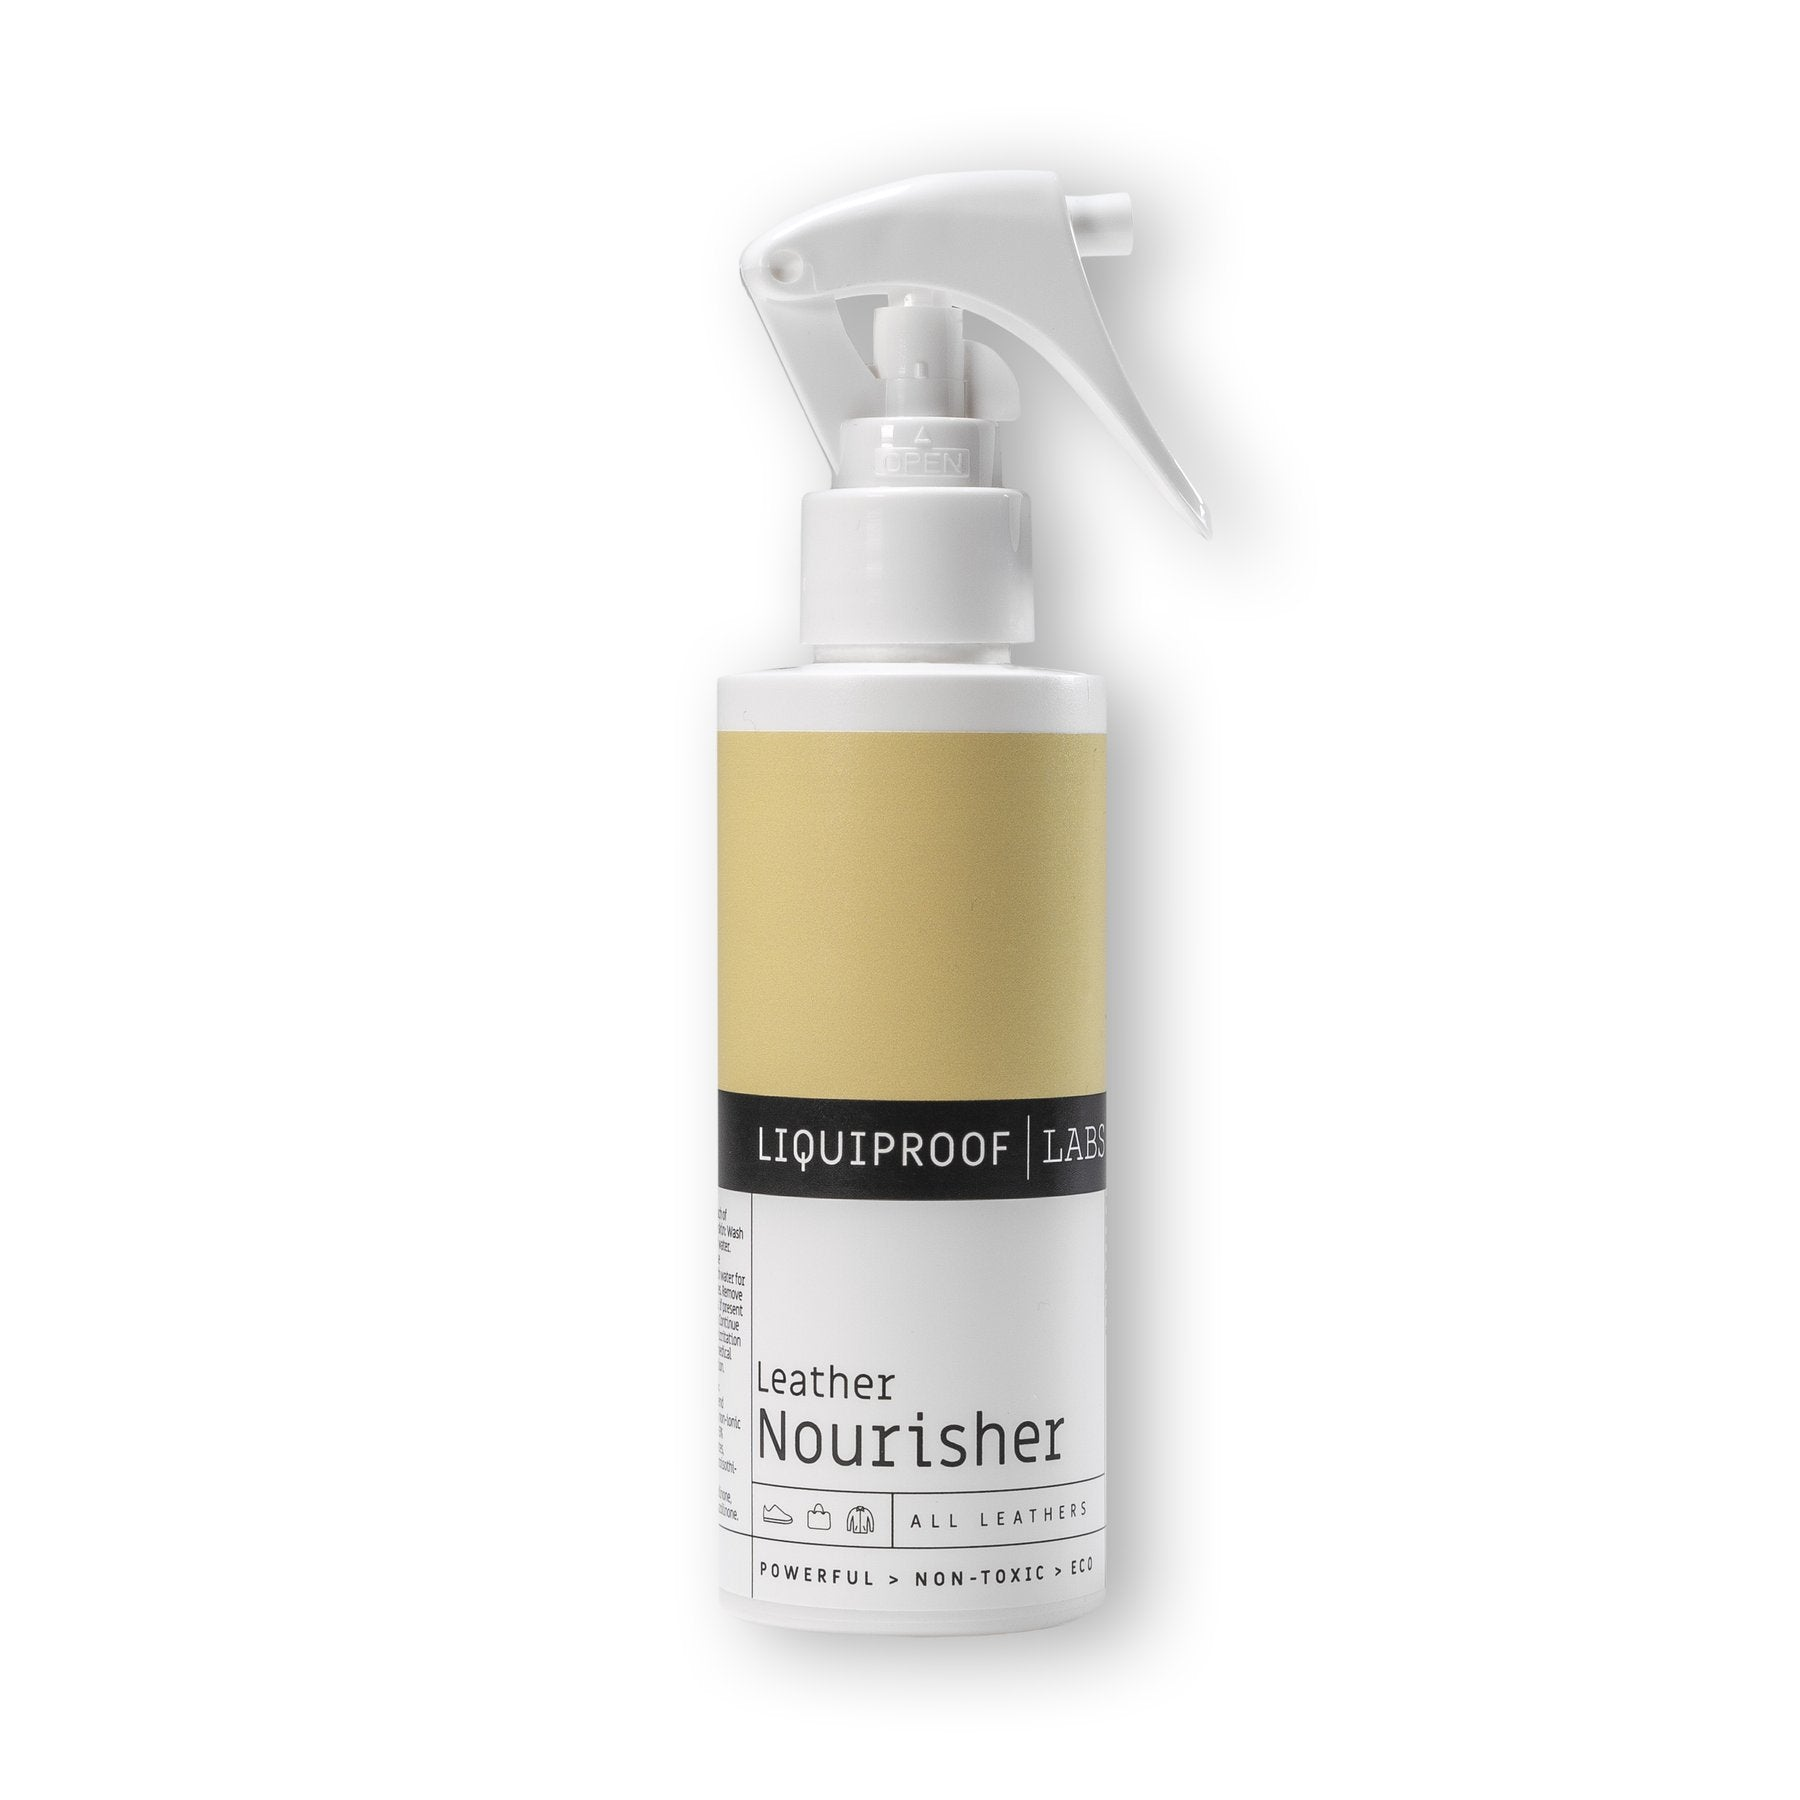 Liquiproof Leather Nourisher